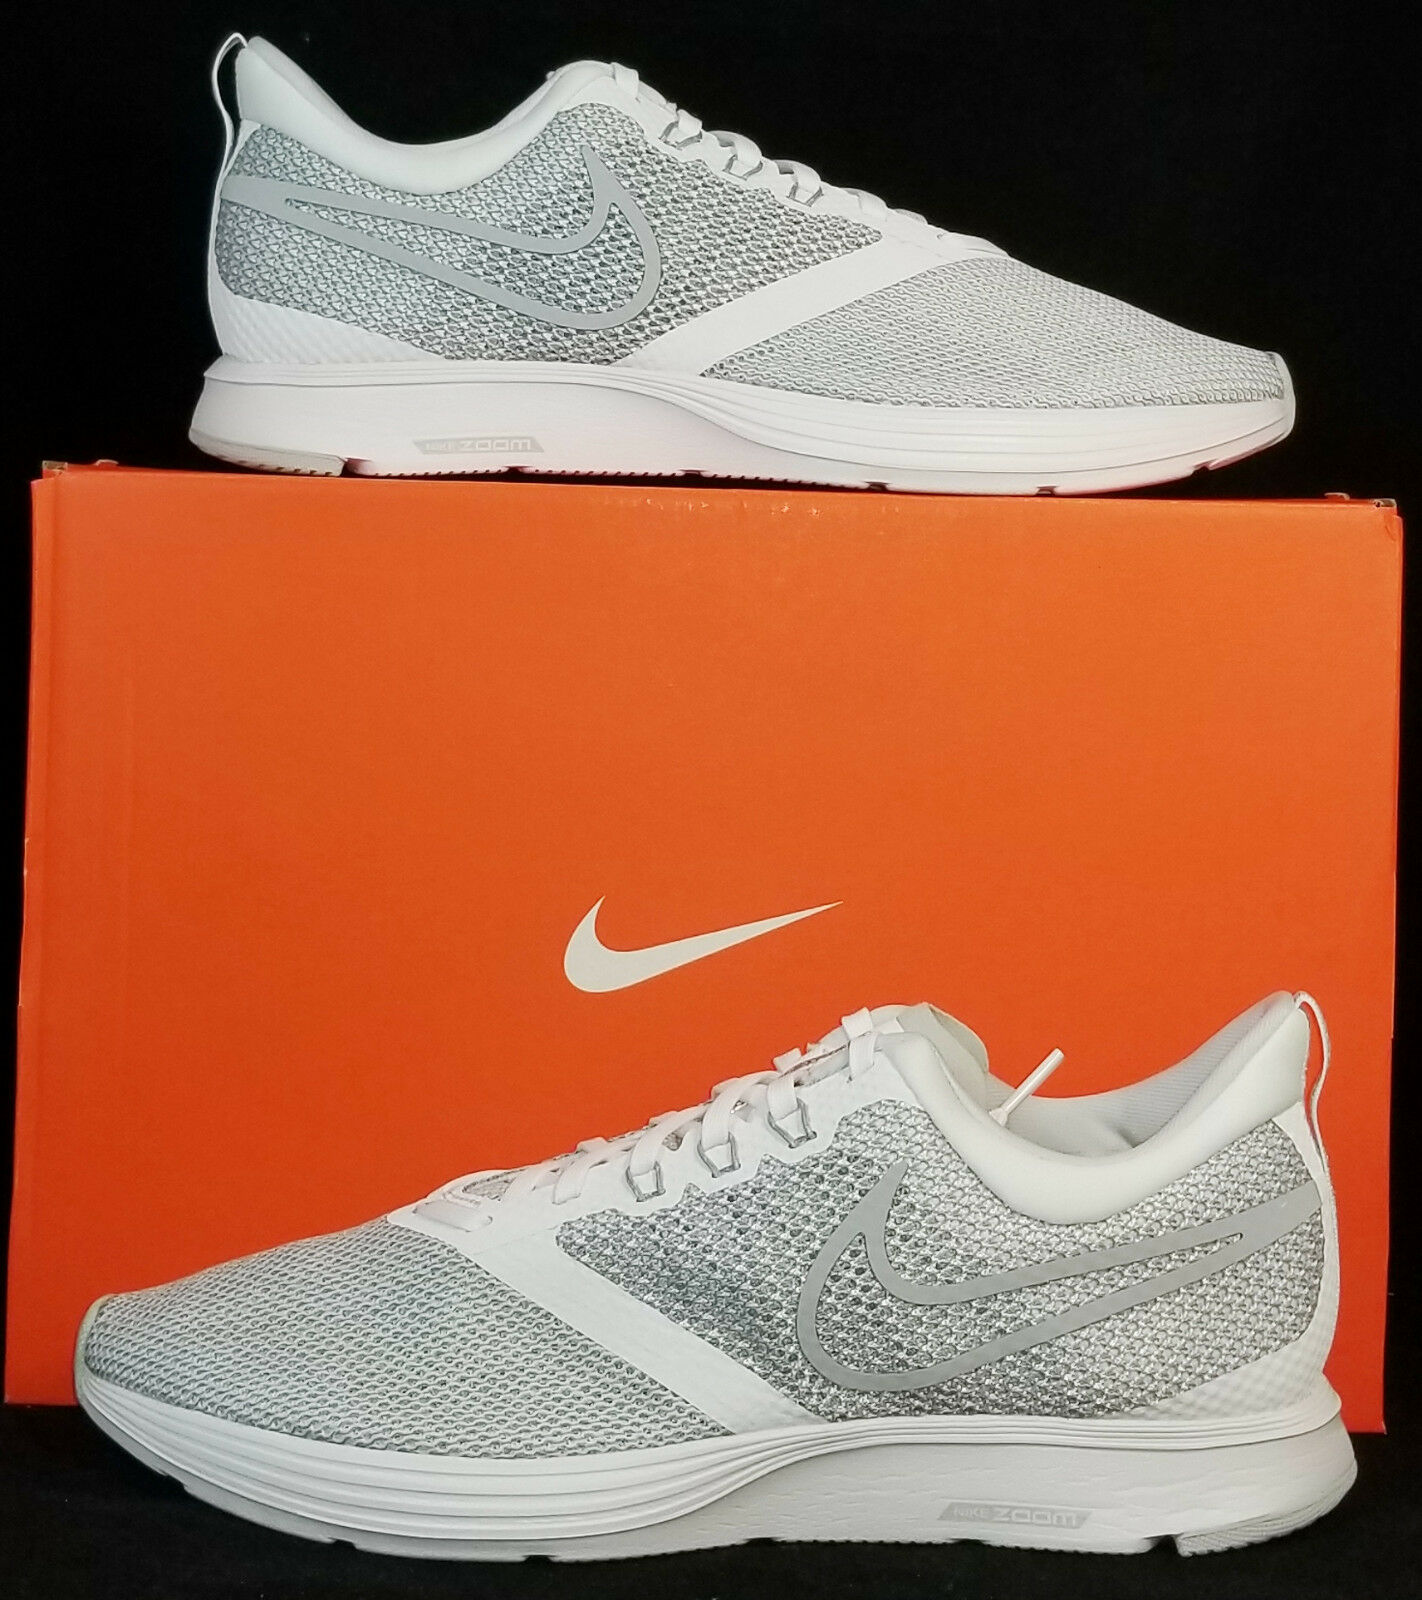 NIB NIKE Mens 9.5 ZOOM STRIKE AJ0189 100 WOLF GREY LIFESTYLE RUNNING SHOE Price reduction Wild casual shoes